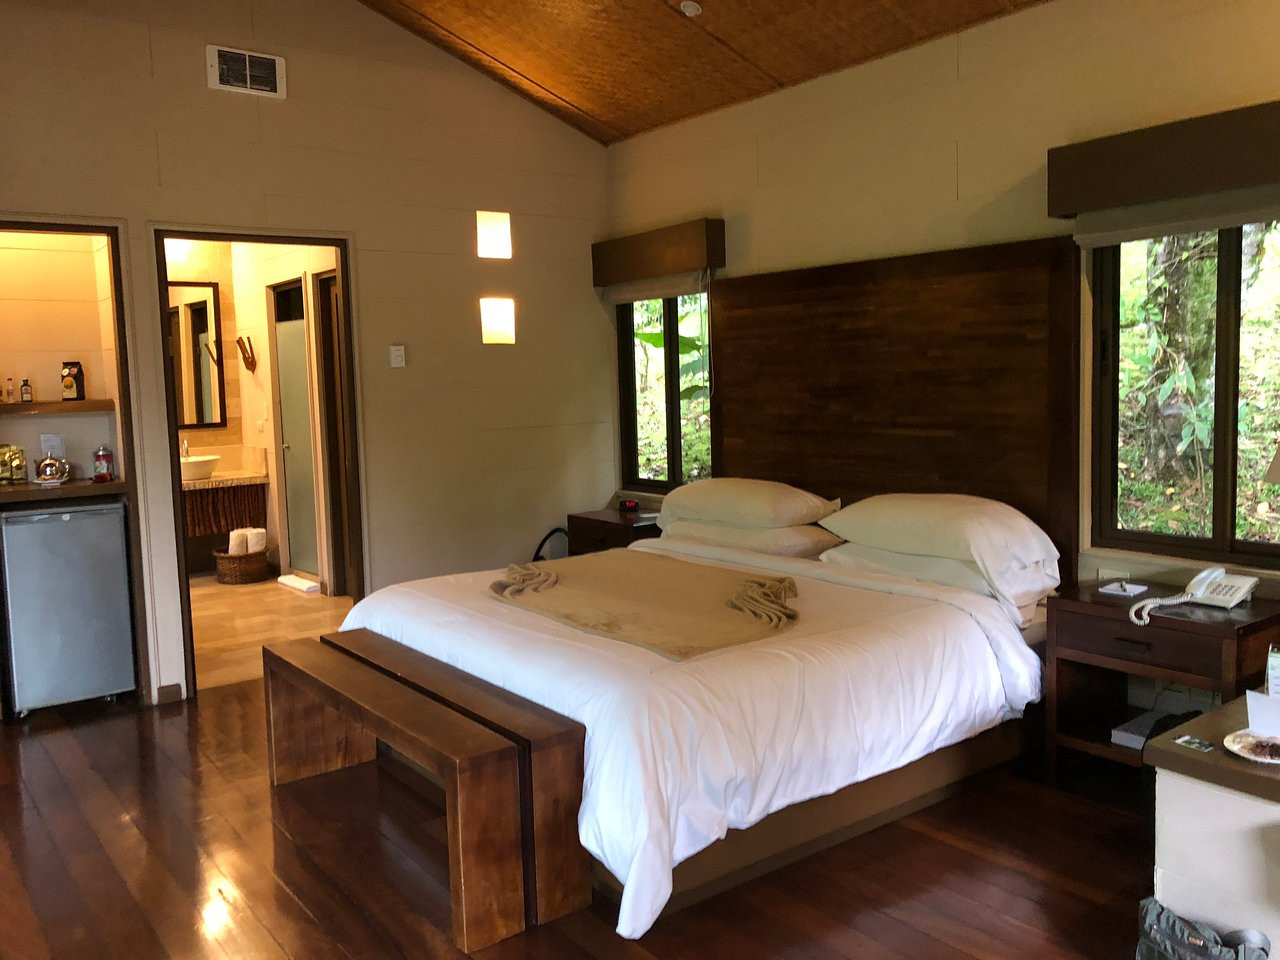 hardwood floor direction of el silencio lodge spa updated 2018 prices hotel reviews costa throughout el silencio lodge spa updated 2018 prices hotel reviews costa rica bajos del toro tripadvisor